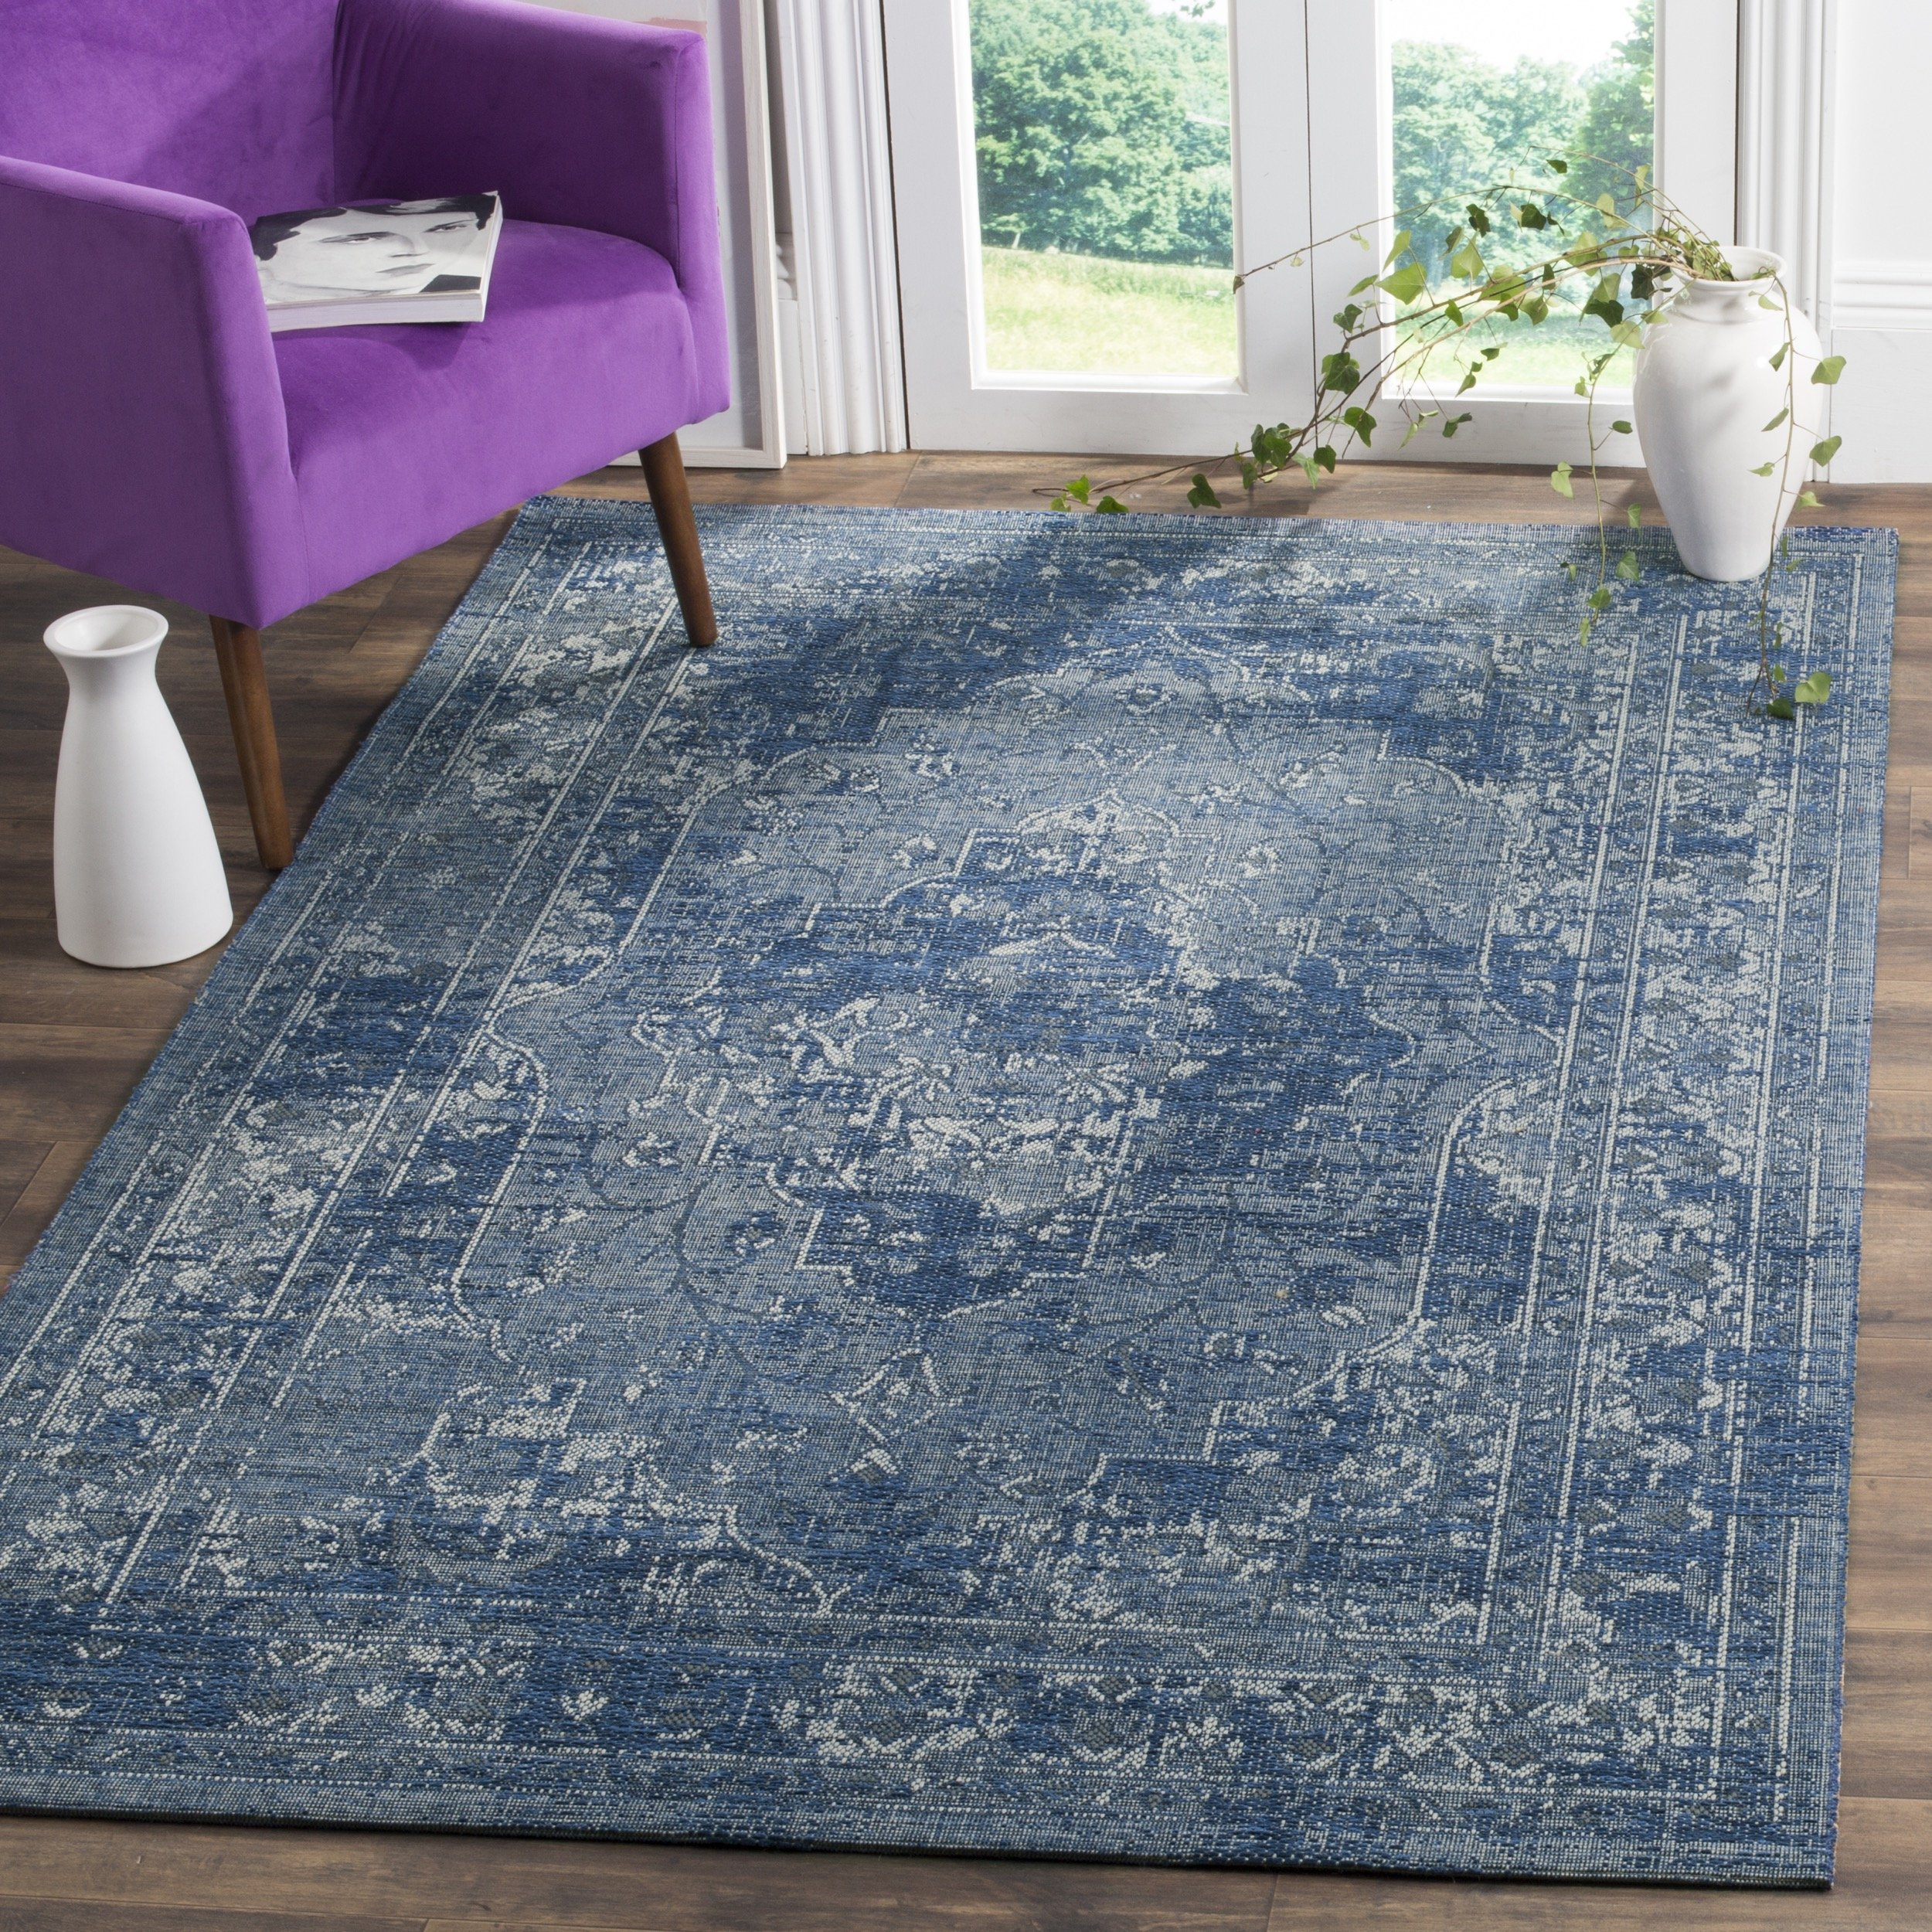 Safavieh Palazzo Collection PAL128-7970 Blue and Light Grey Area Rug, 5' x 8'